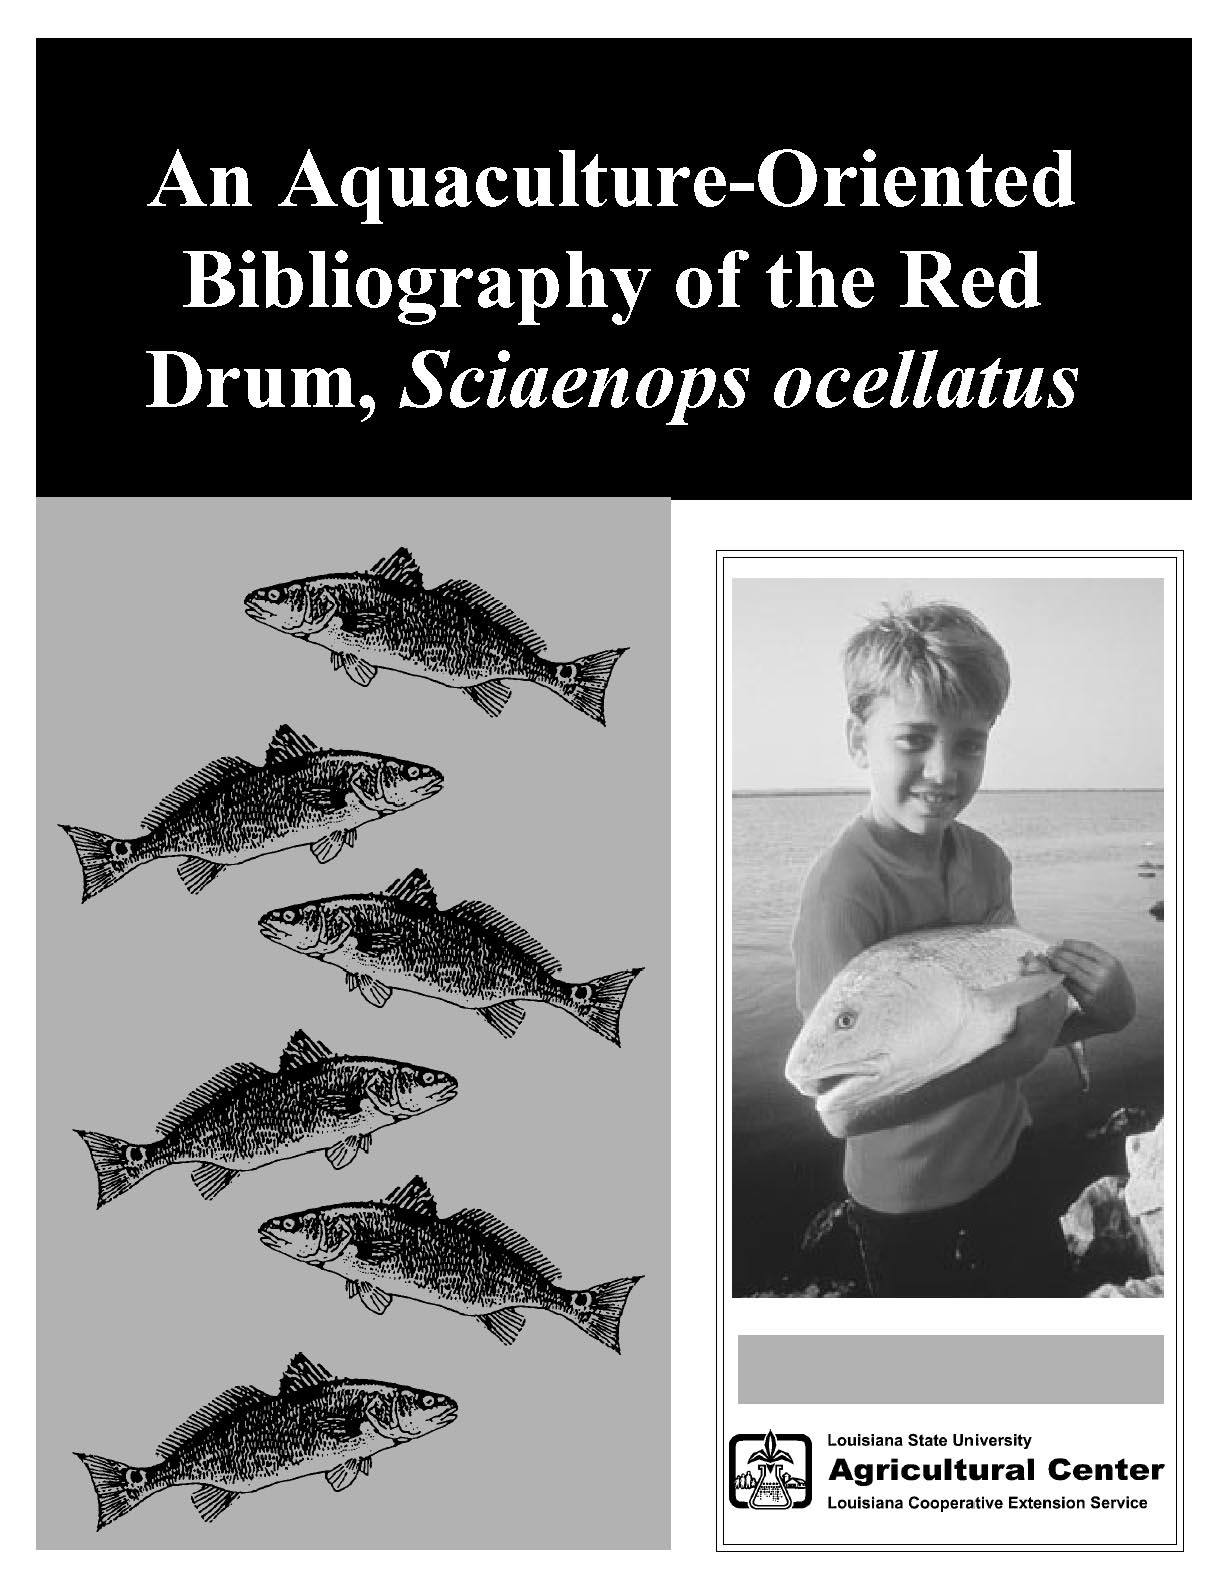 An Aquaculture-Oriented Bibliography of the Red Drum, Sciaenops ocellatus